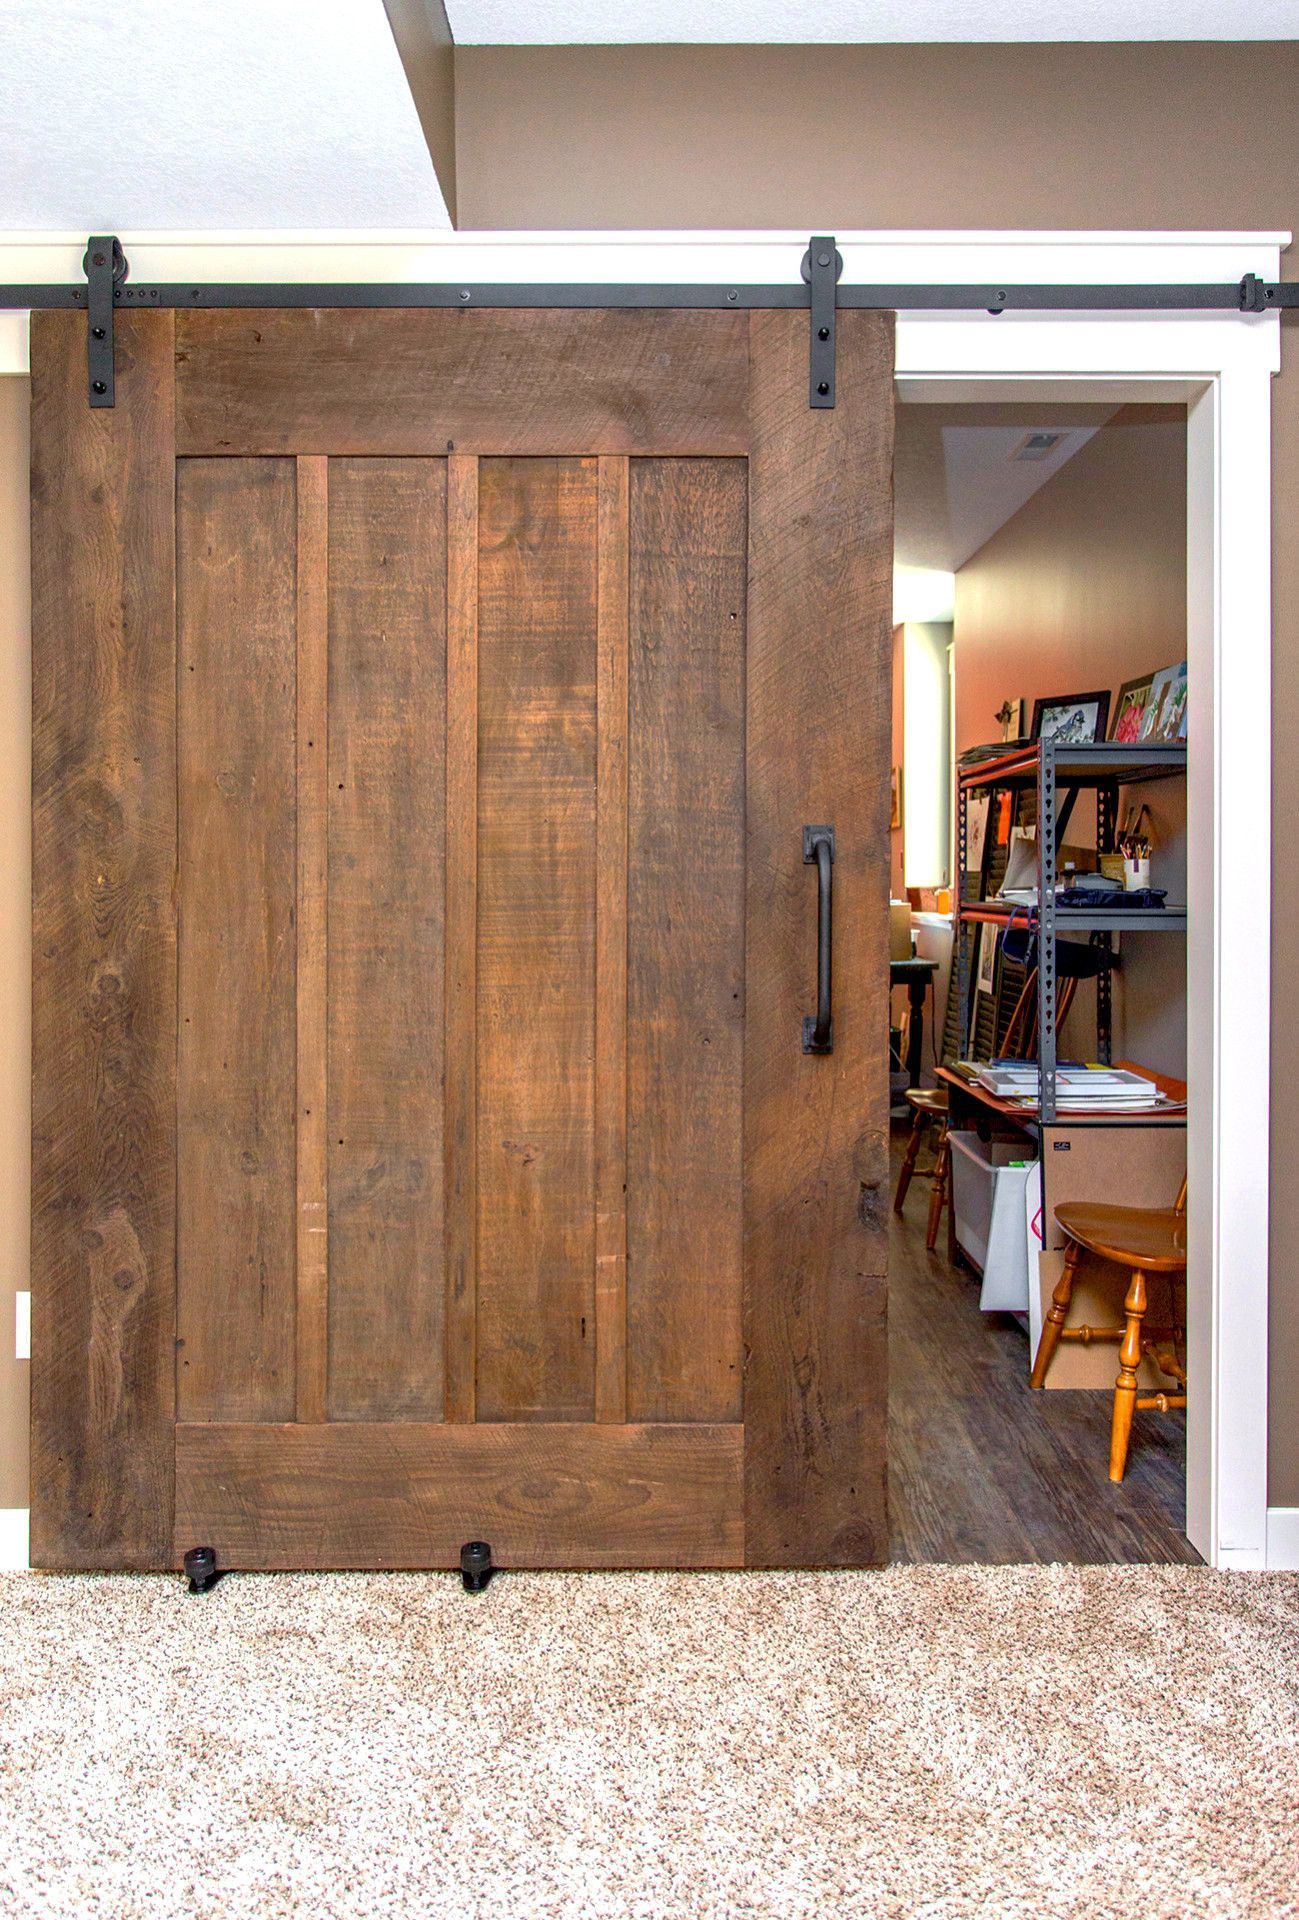 The Traditional Barn doors for sale, Modern sliding barn